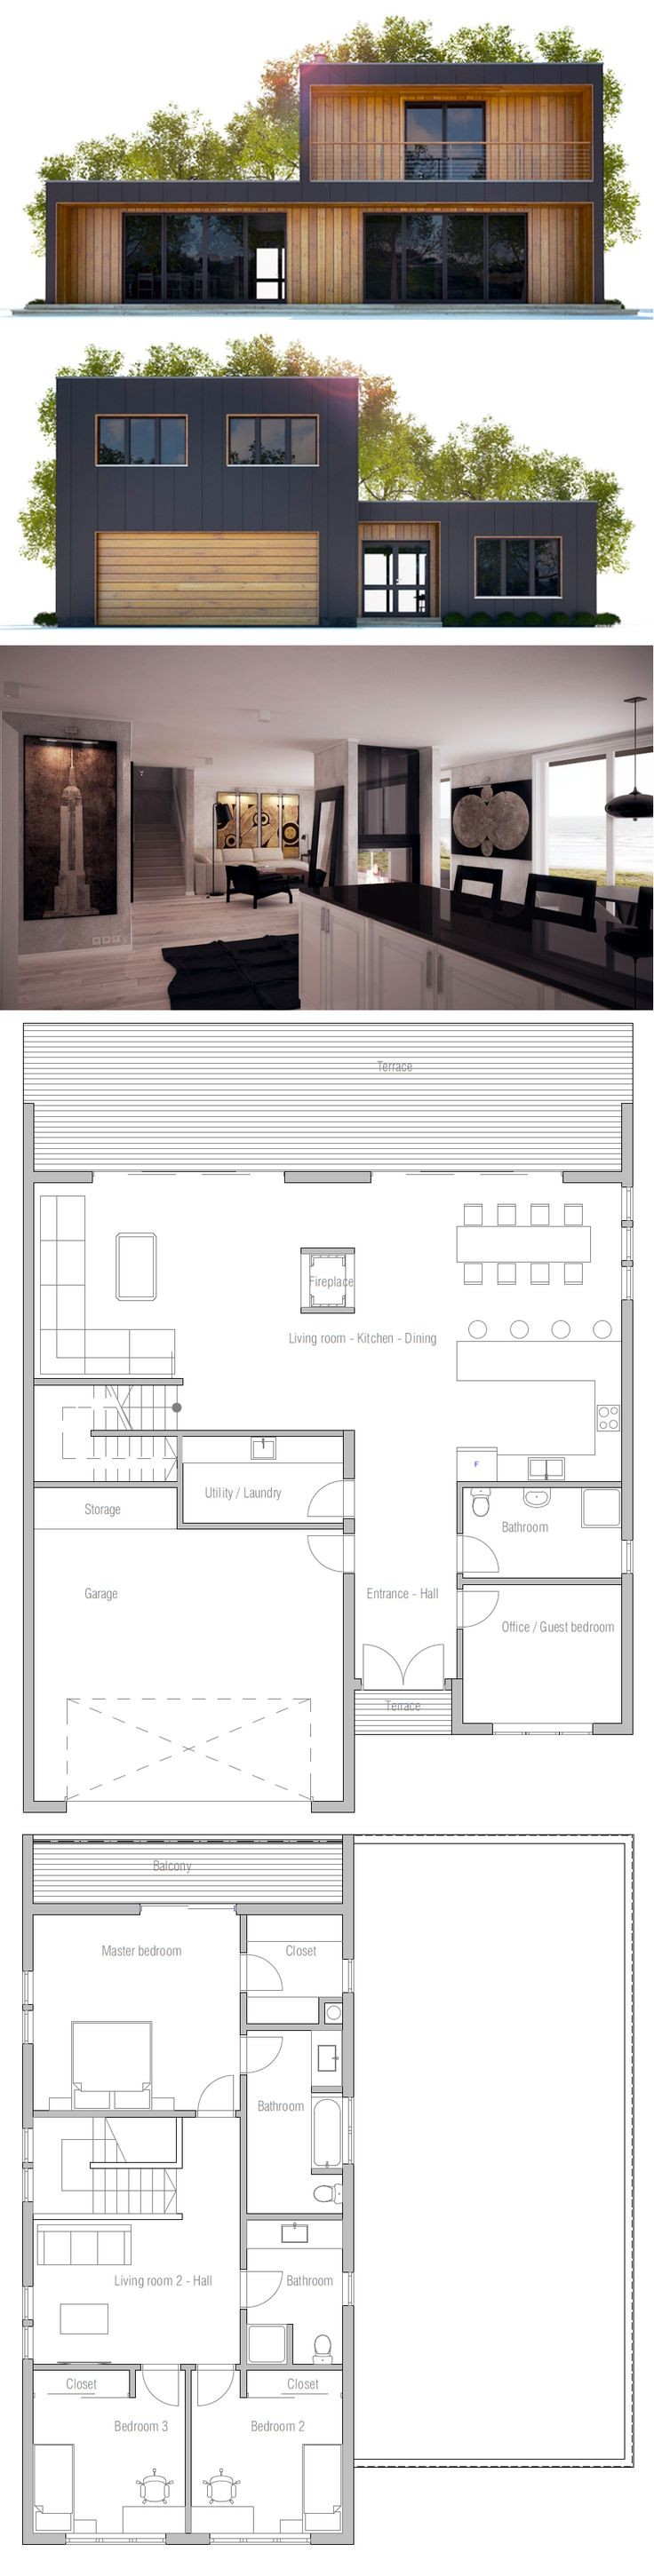 Best 25 modern house floor plans ideas on pinterest modern house plans modern floor plans - Build house plans online free concept ...